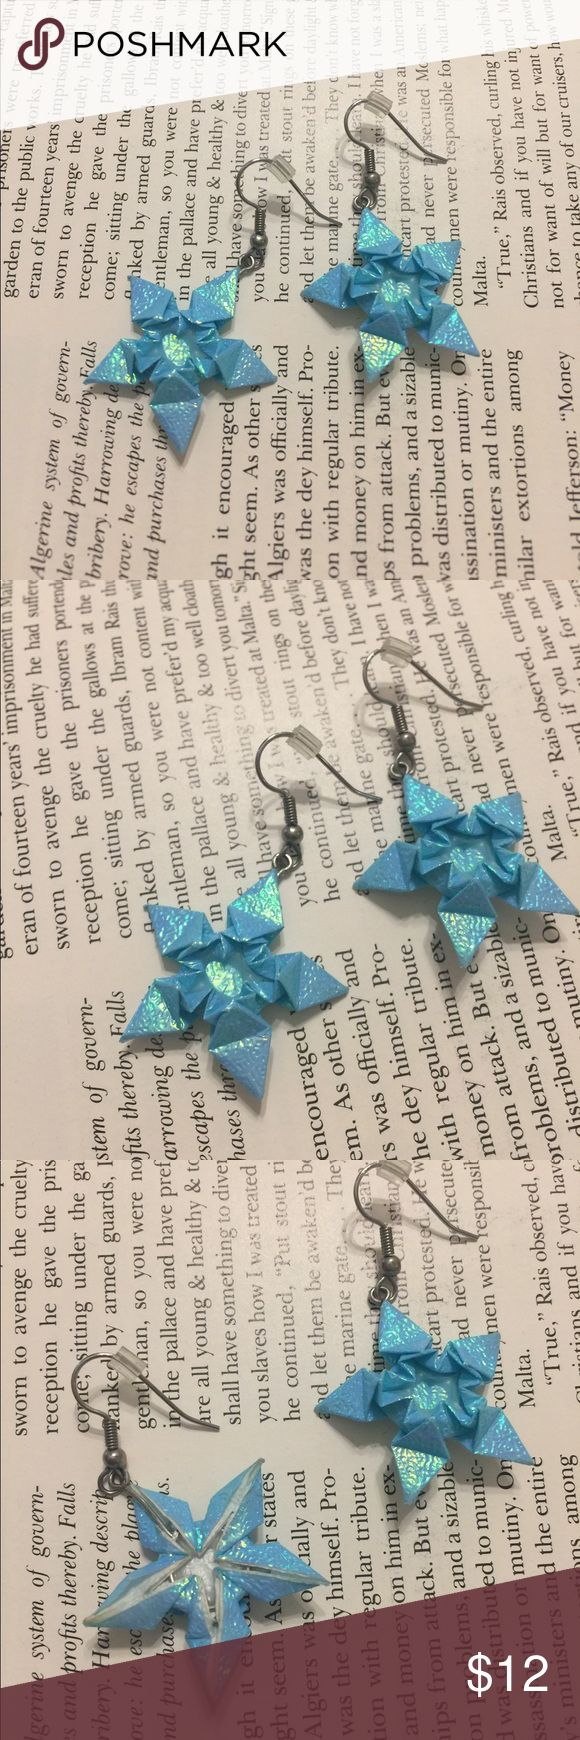 Origami snowflake earrings Looking for something special and one of a kind? These petite snowflakes are handmade origami earrings! Made of beautiful sky blue iridescent paper and hung from fishhook ear wires. Comes with rubber stoppers.   No swapping, but I do offer bundle discounts.    #snowflake #earrings #handmade #origami #winter #snow handmade Jewelry Earrings